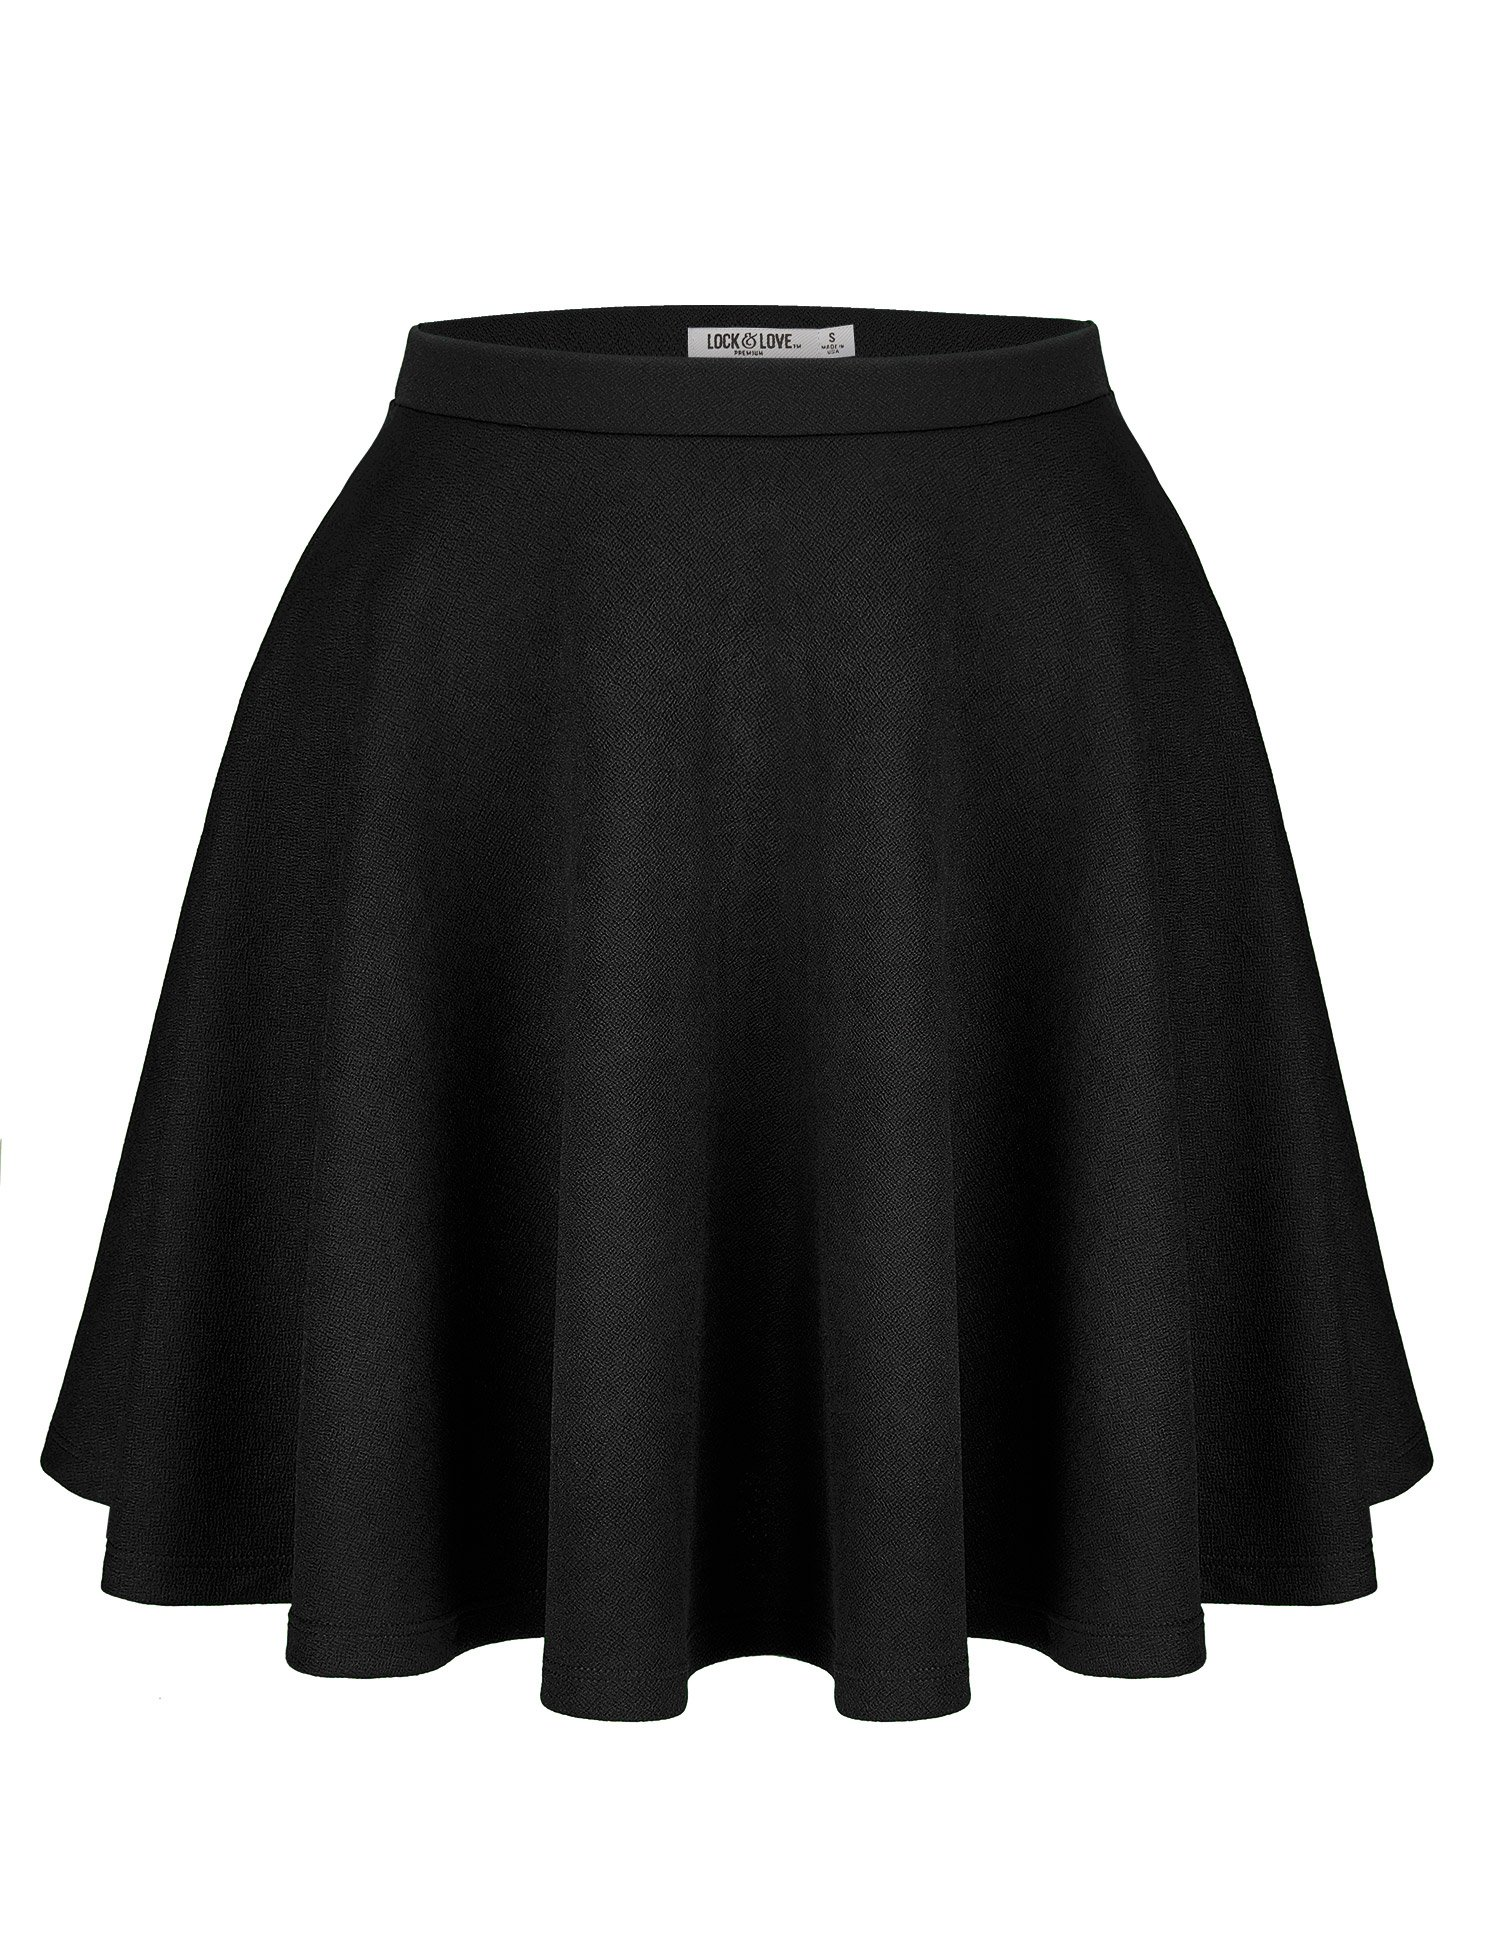 Lock and Love WB1580 Womens Verstaile Stretchy Flared Casual Skater Skirt - Made in USA S Black